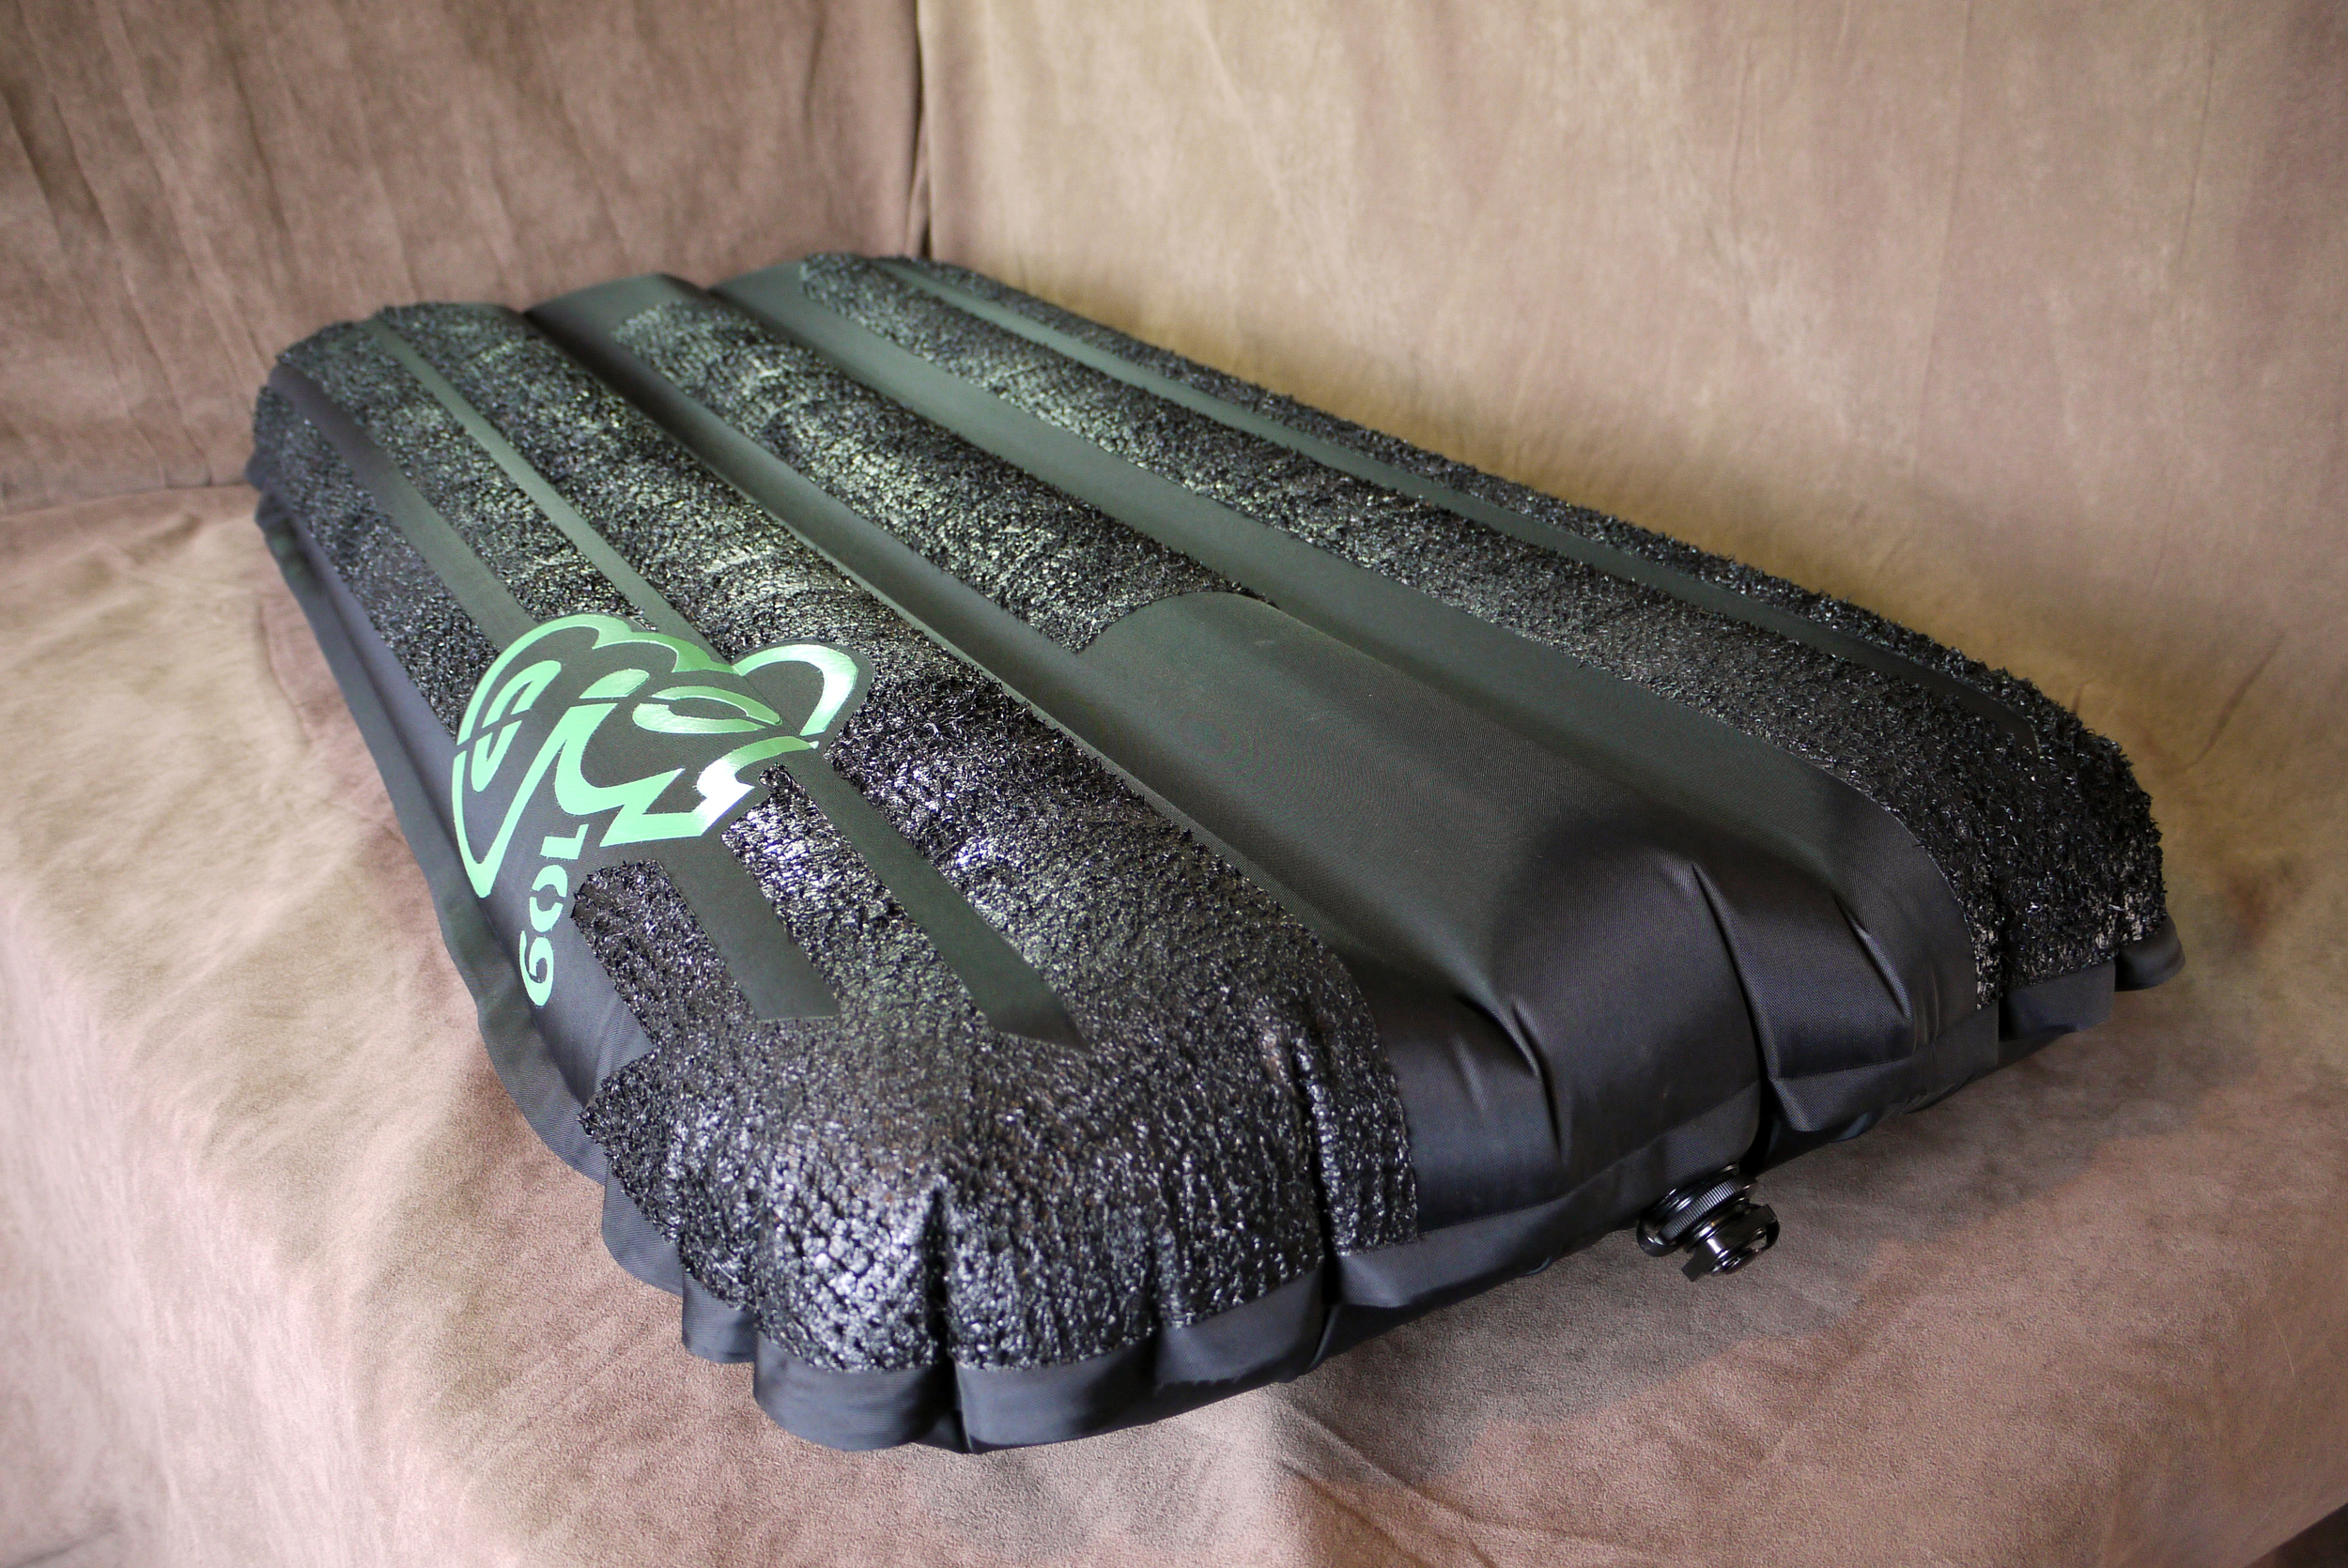 Surfmat surf mat Big Mac Avocado Hauler Tim MacMurray 587